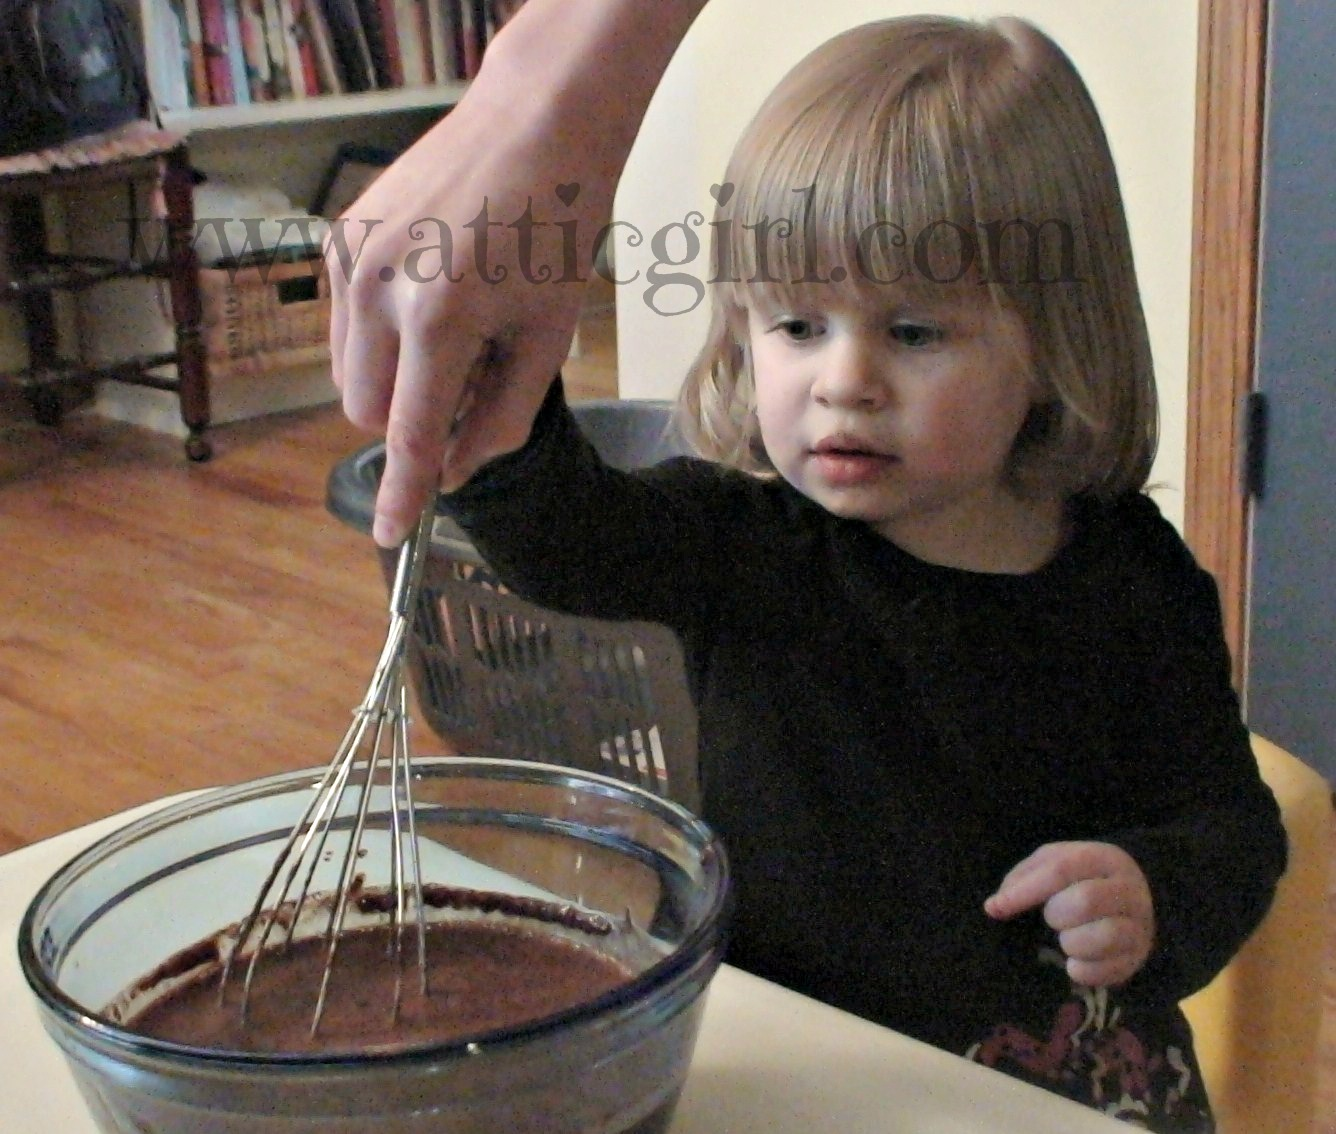 toddlers, sensory activities, crafts